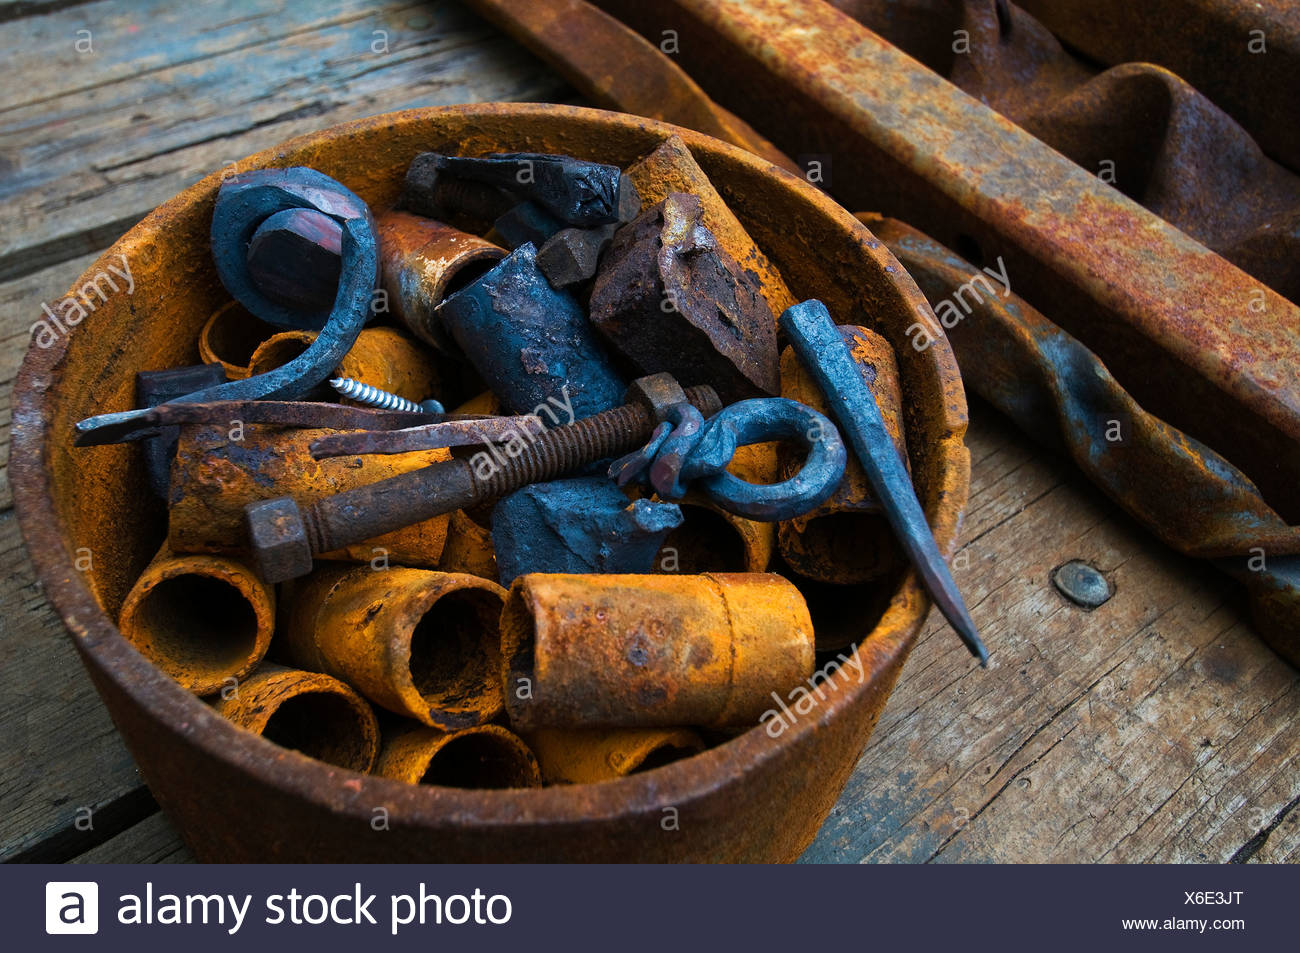 Close-up of a bucket of abandon rusty scrap on wooden surface - Stock Image